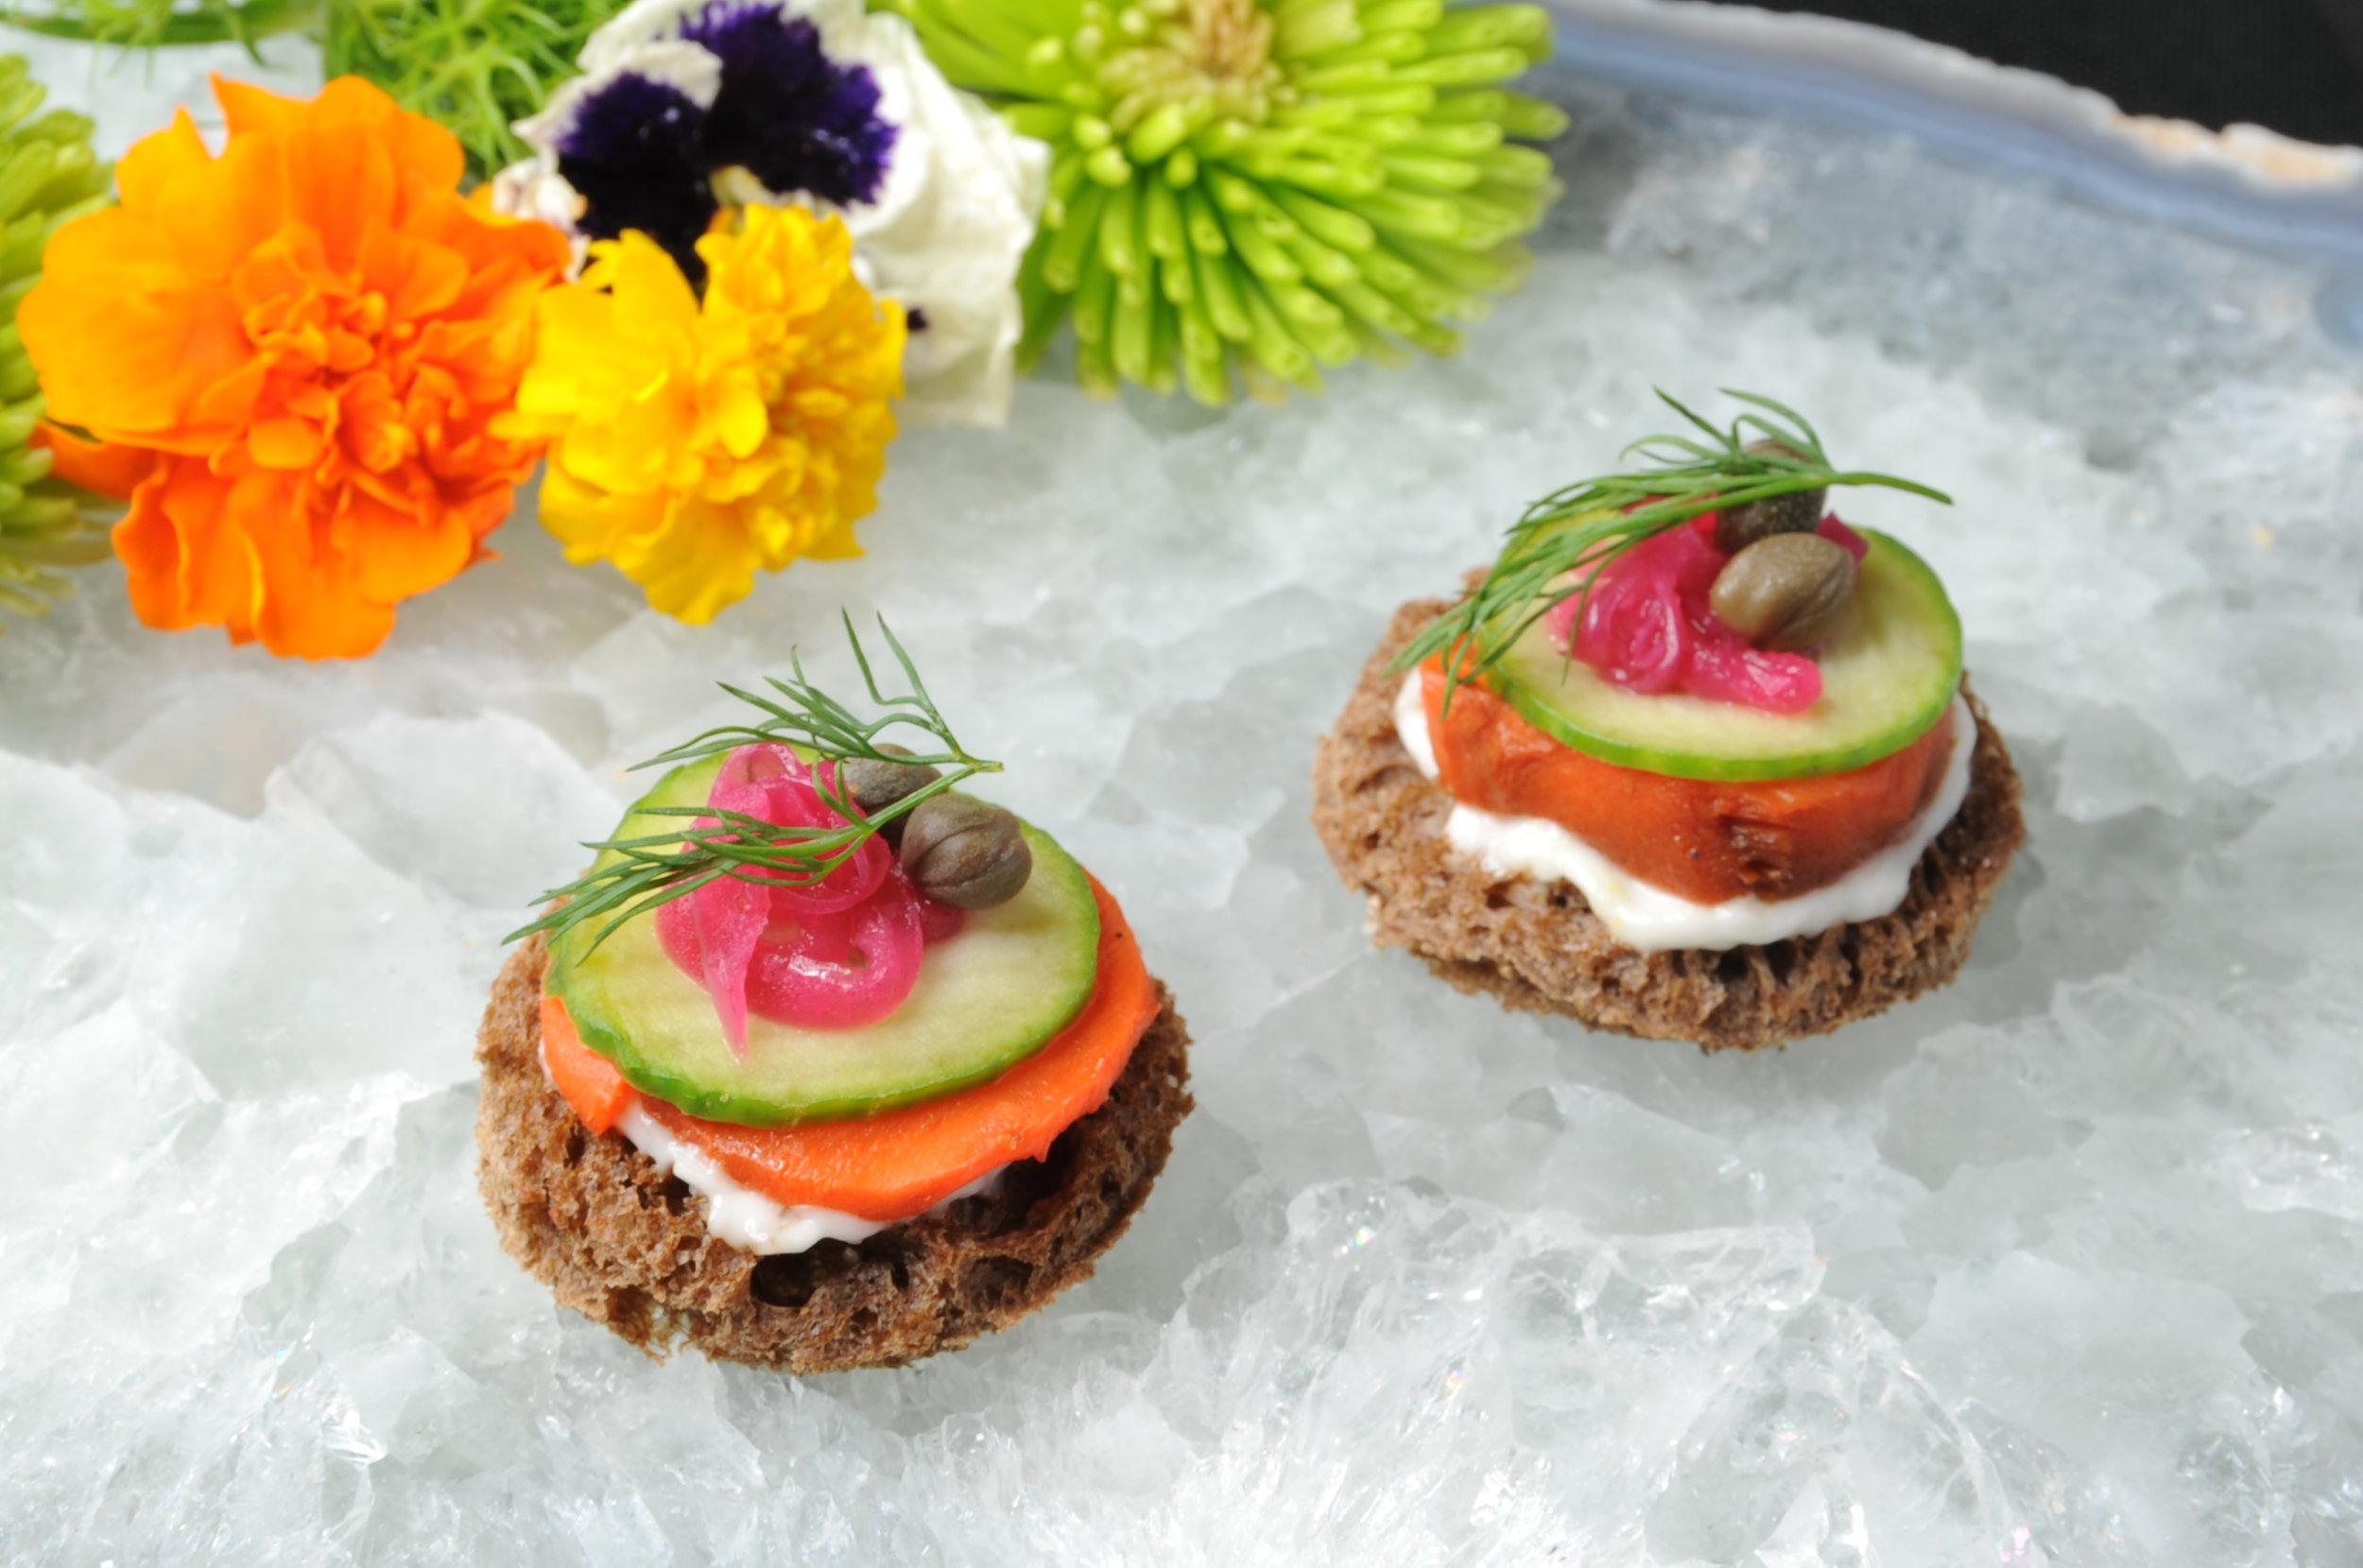 Toasted pumpernickel with carrot lox, mustard dill aioli, pickled red onion, and capers